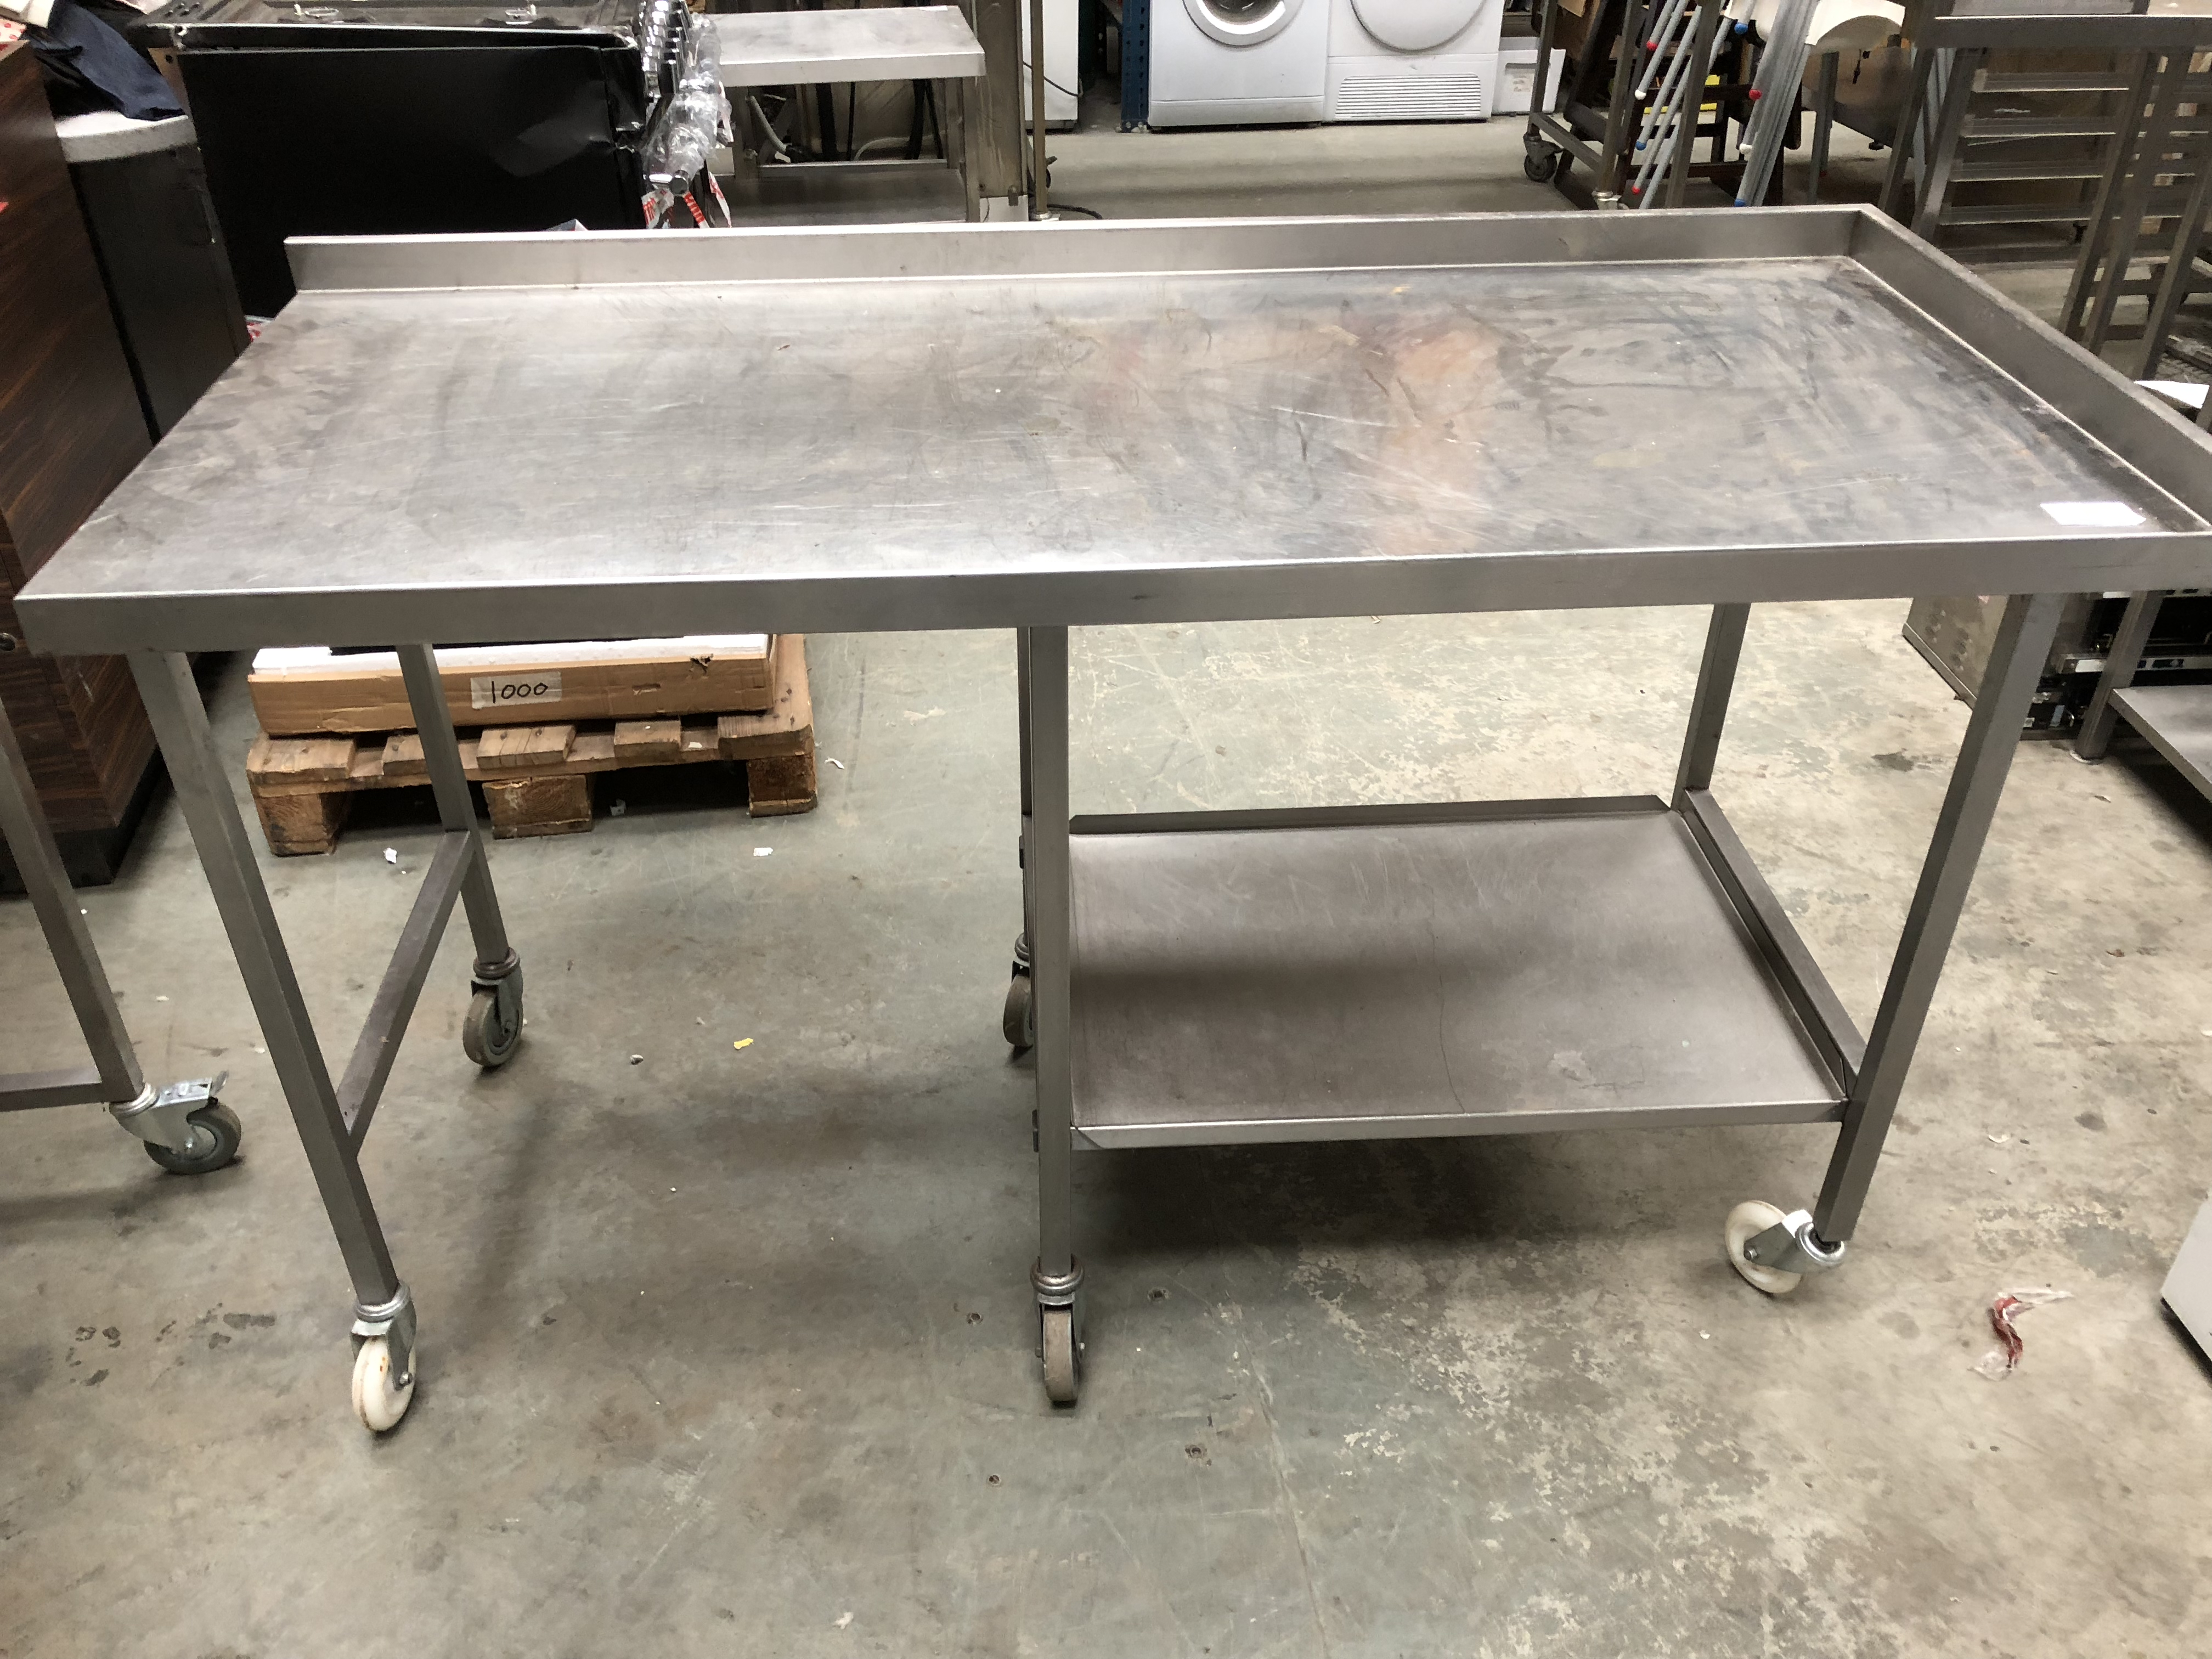 Lot 53 - Stainless Steel Table with Part Under Shelf